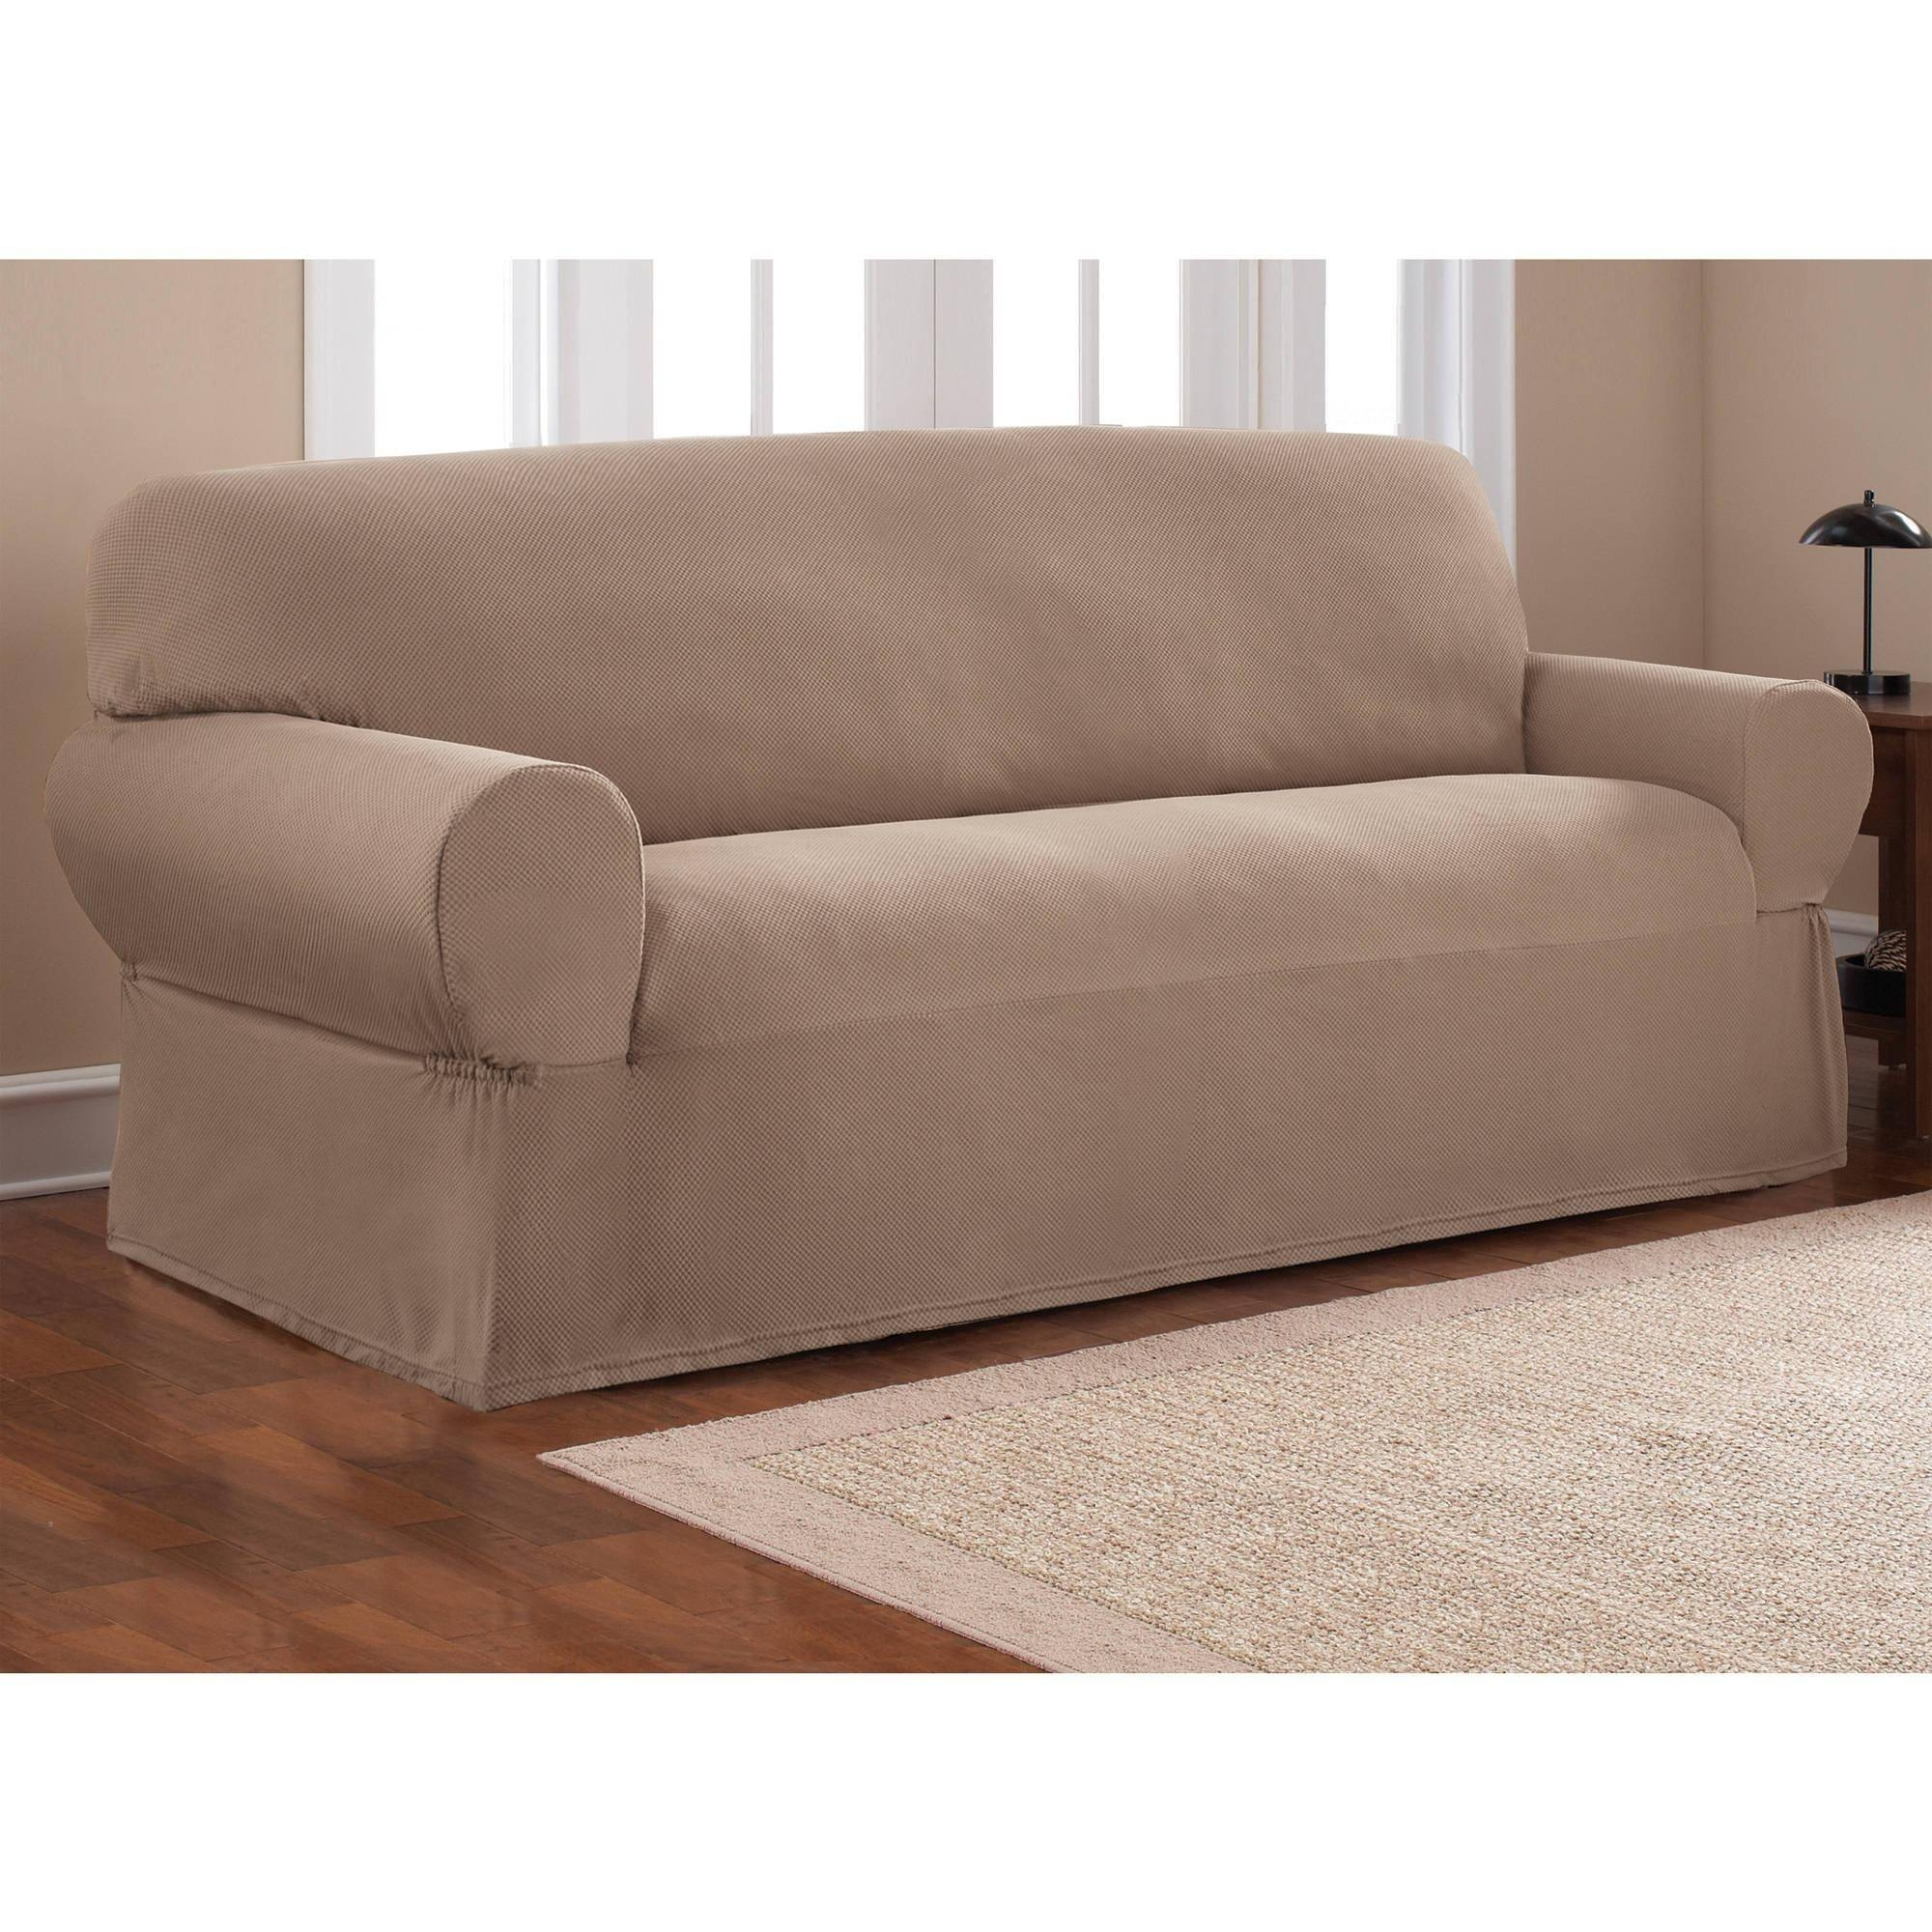 20 Best Mainstay Sofas   Sofa Ideas Intended For Mainstay Sofas (View 6 of 15)